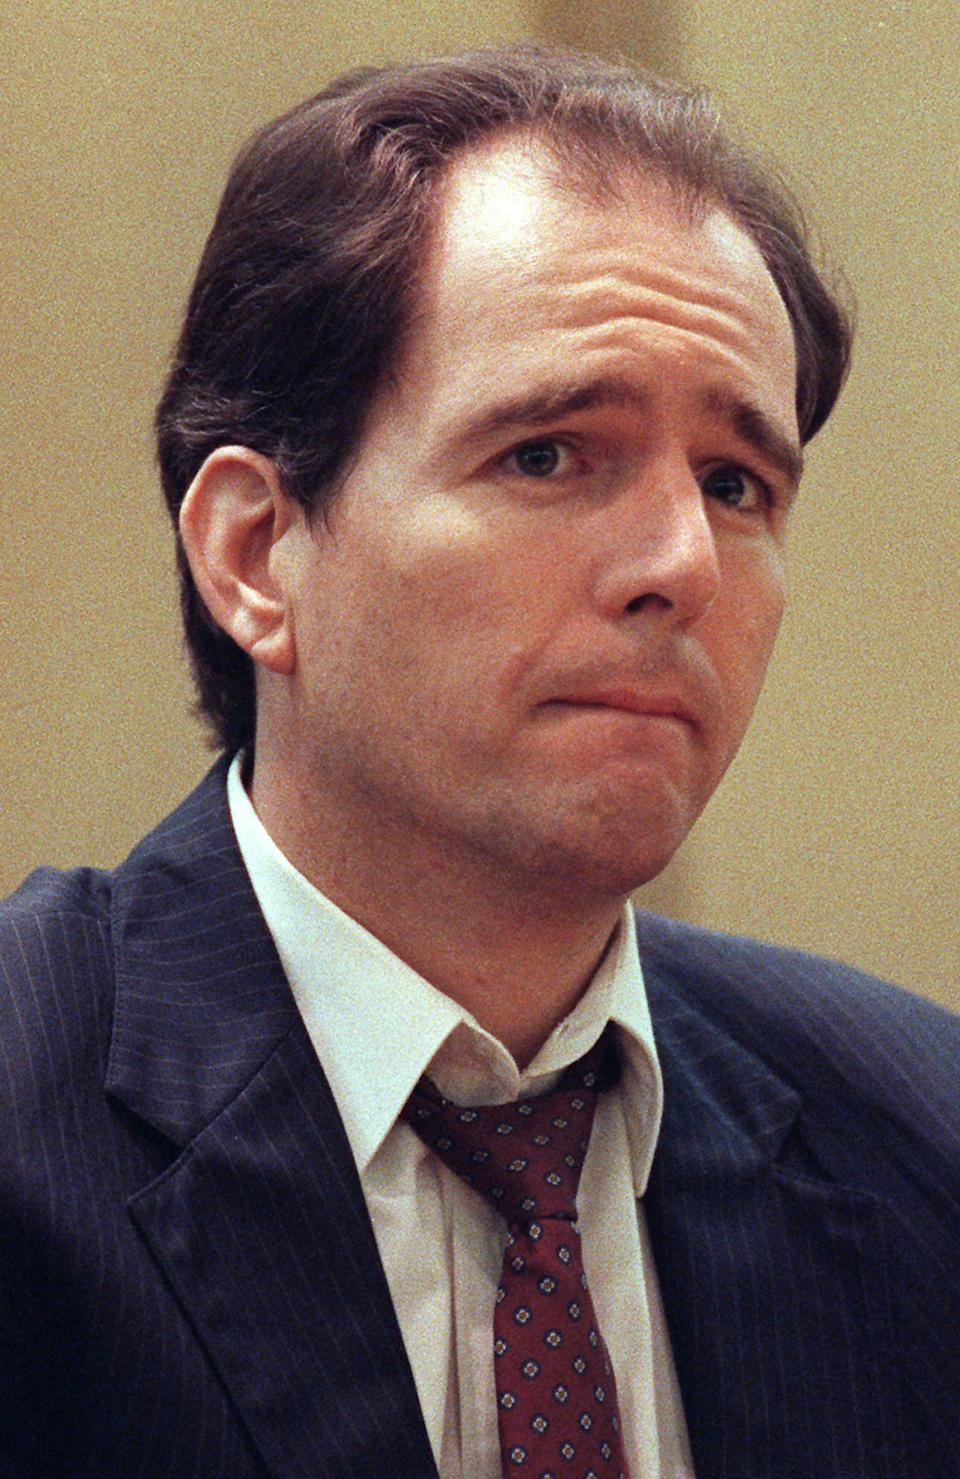 Danny Rolling (pictured in 1994) confessed to both sets of killings and was executed in 2006. Source: AP